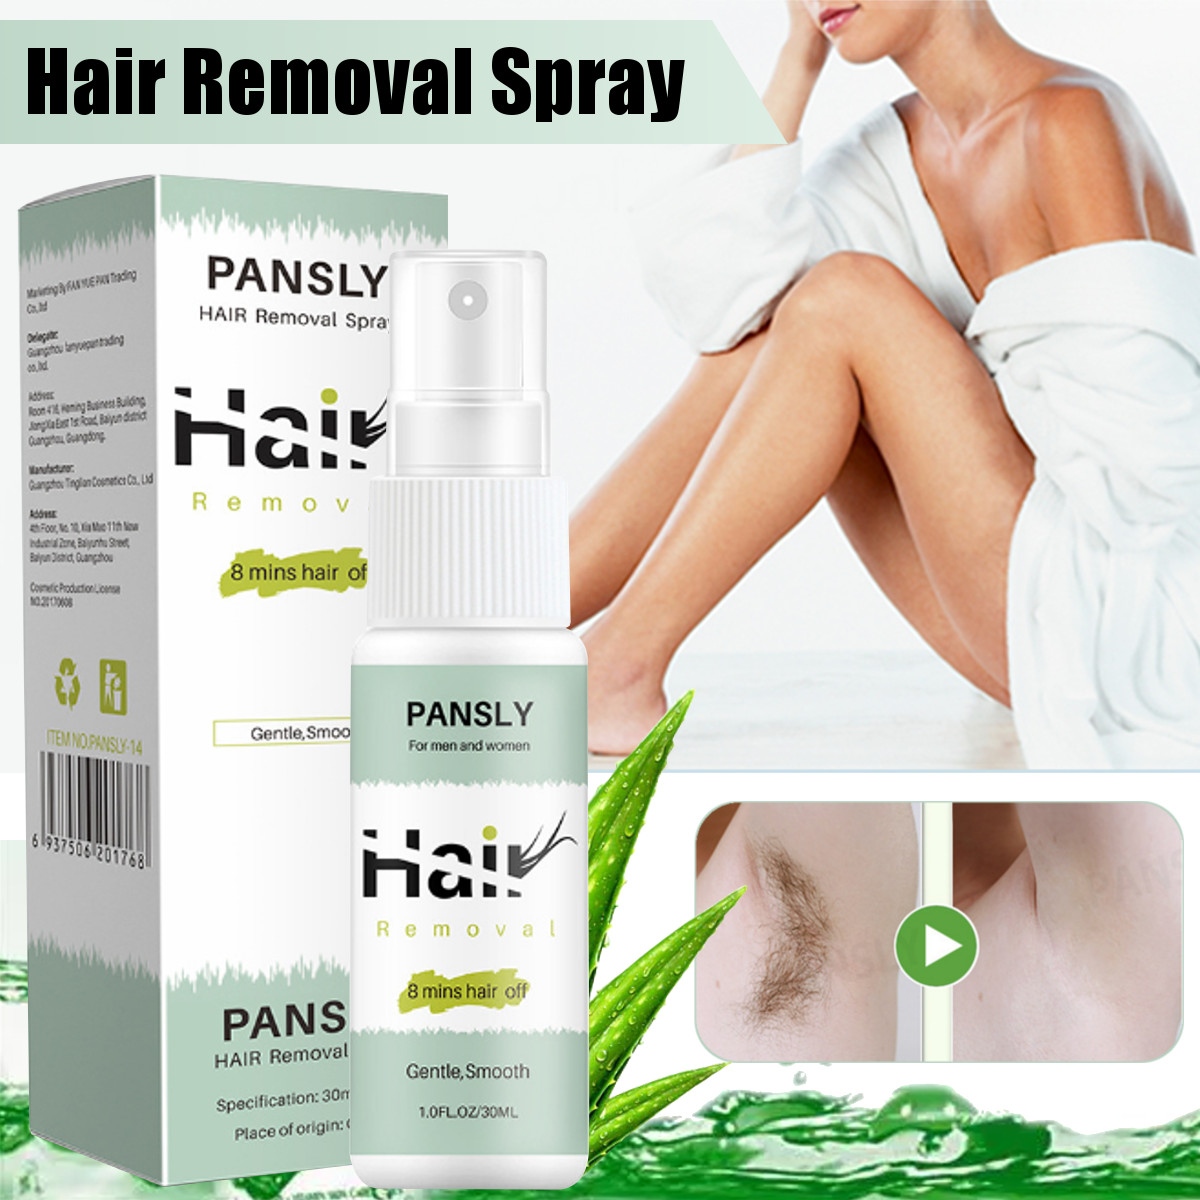 Pansly 8 Mins Off Hair Removal Cream Face Body Pubic Hair Depilatory Beard Bikini Legs Armpit Painless Hair Removal Spray